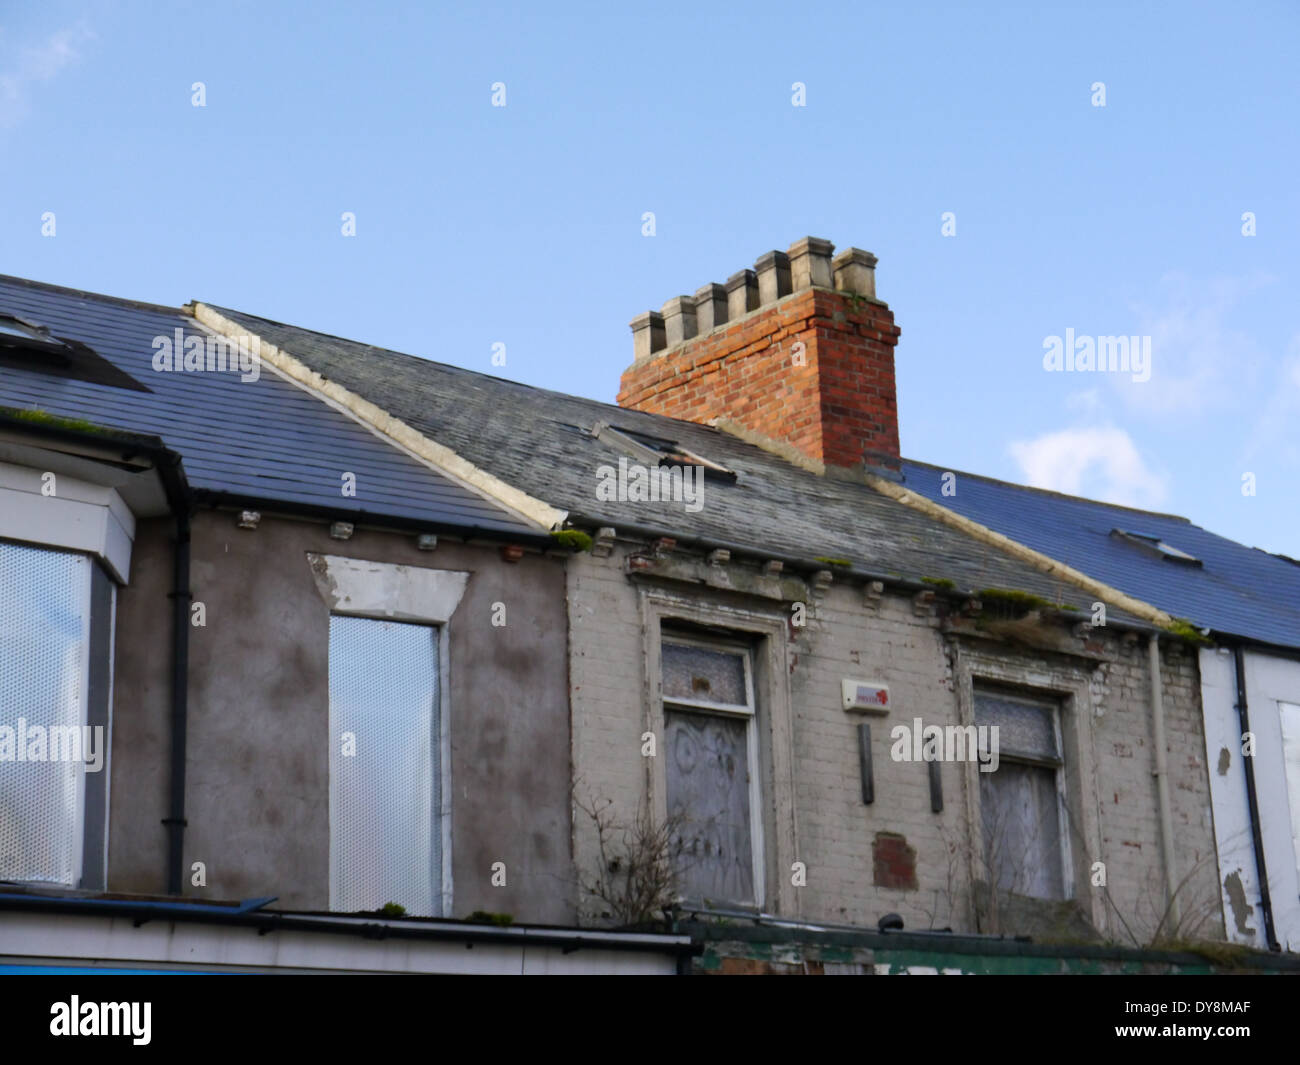 Urban dereliction, South Shields, England, UK - Stock Image